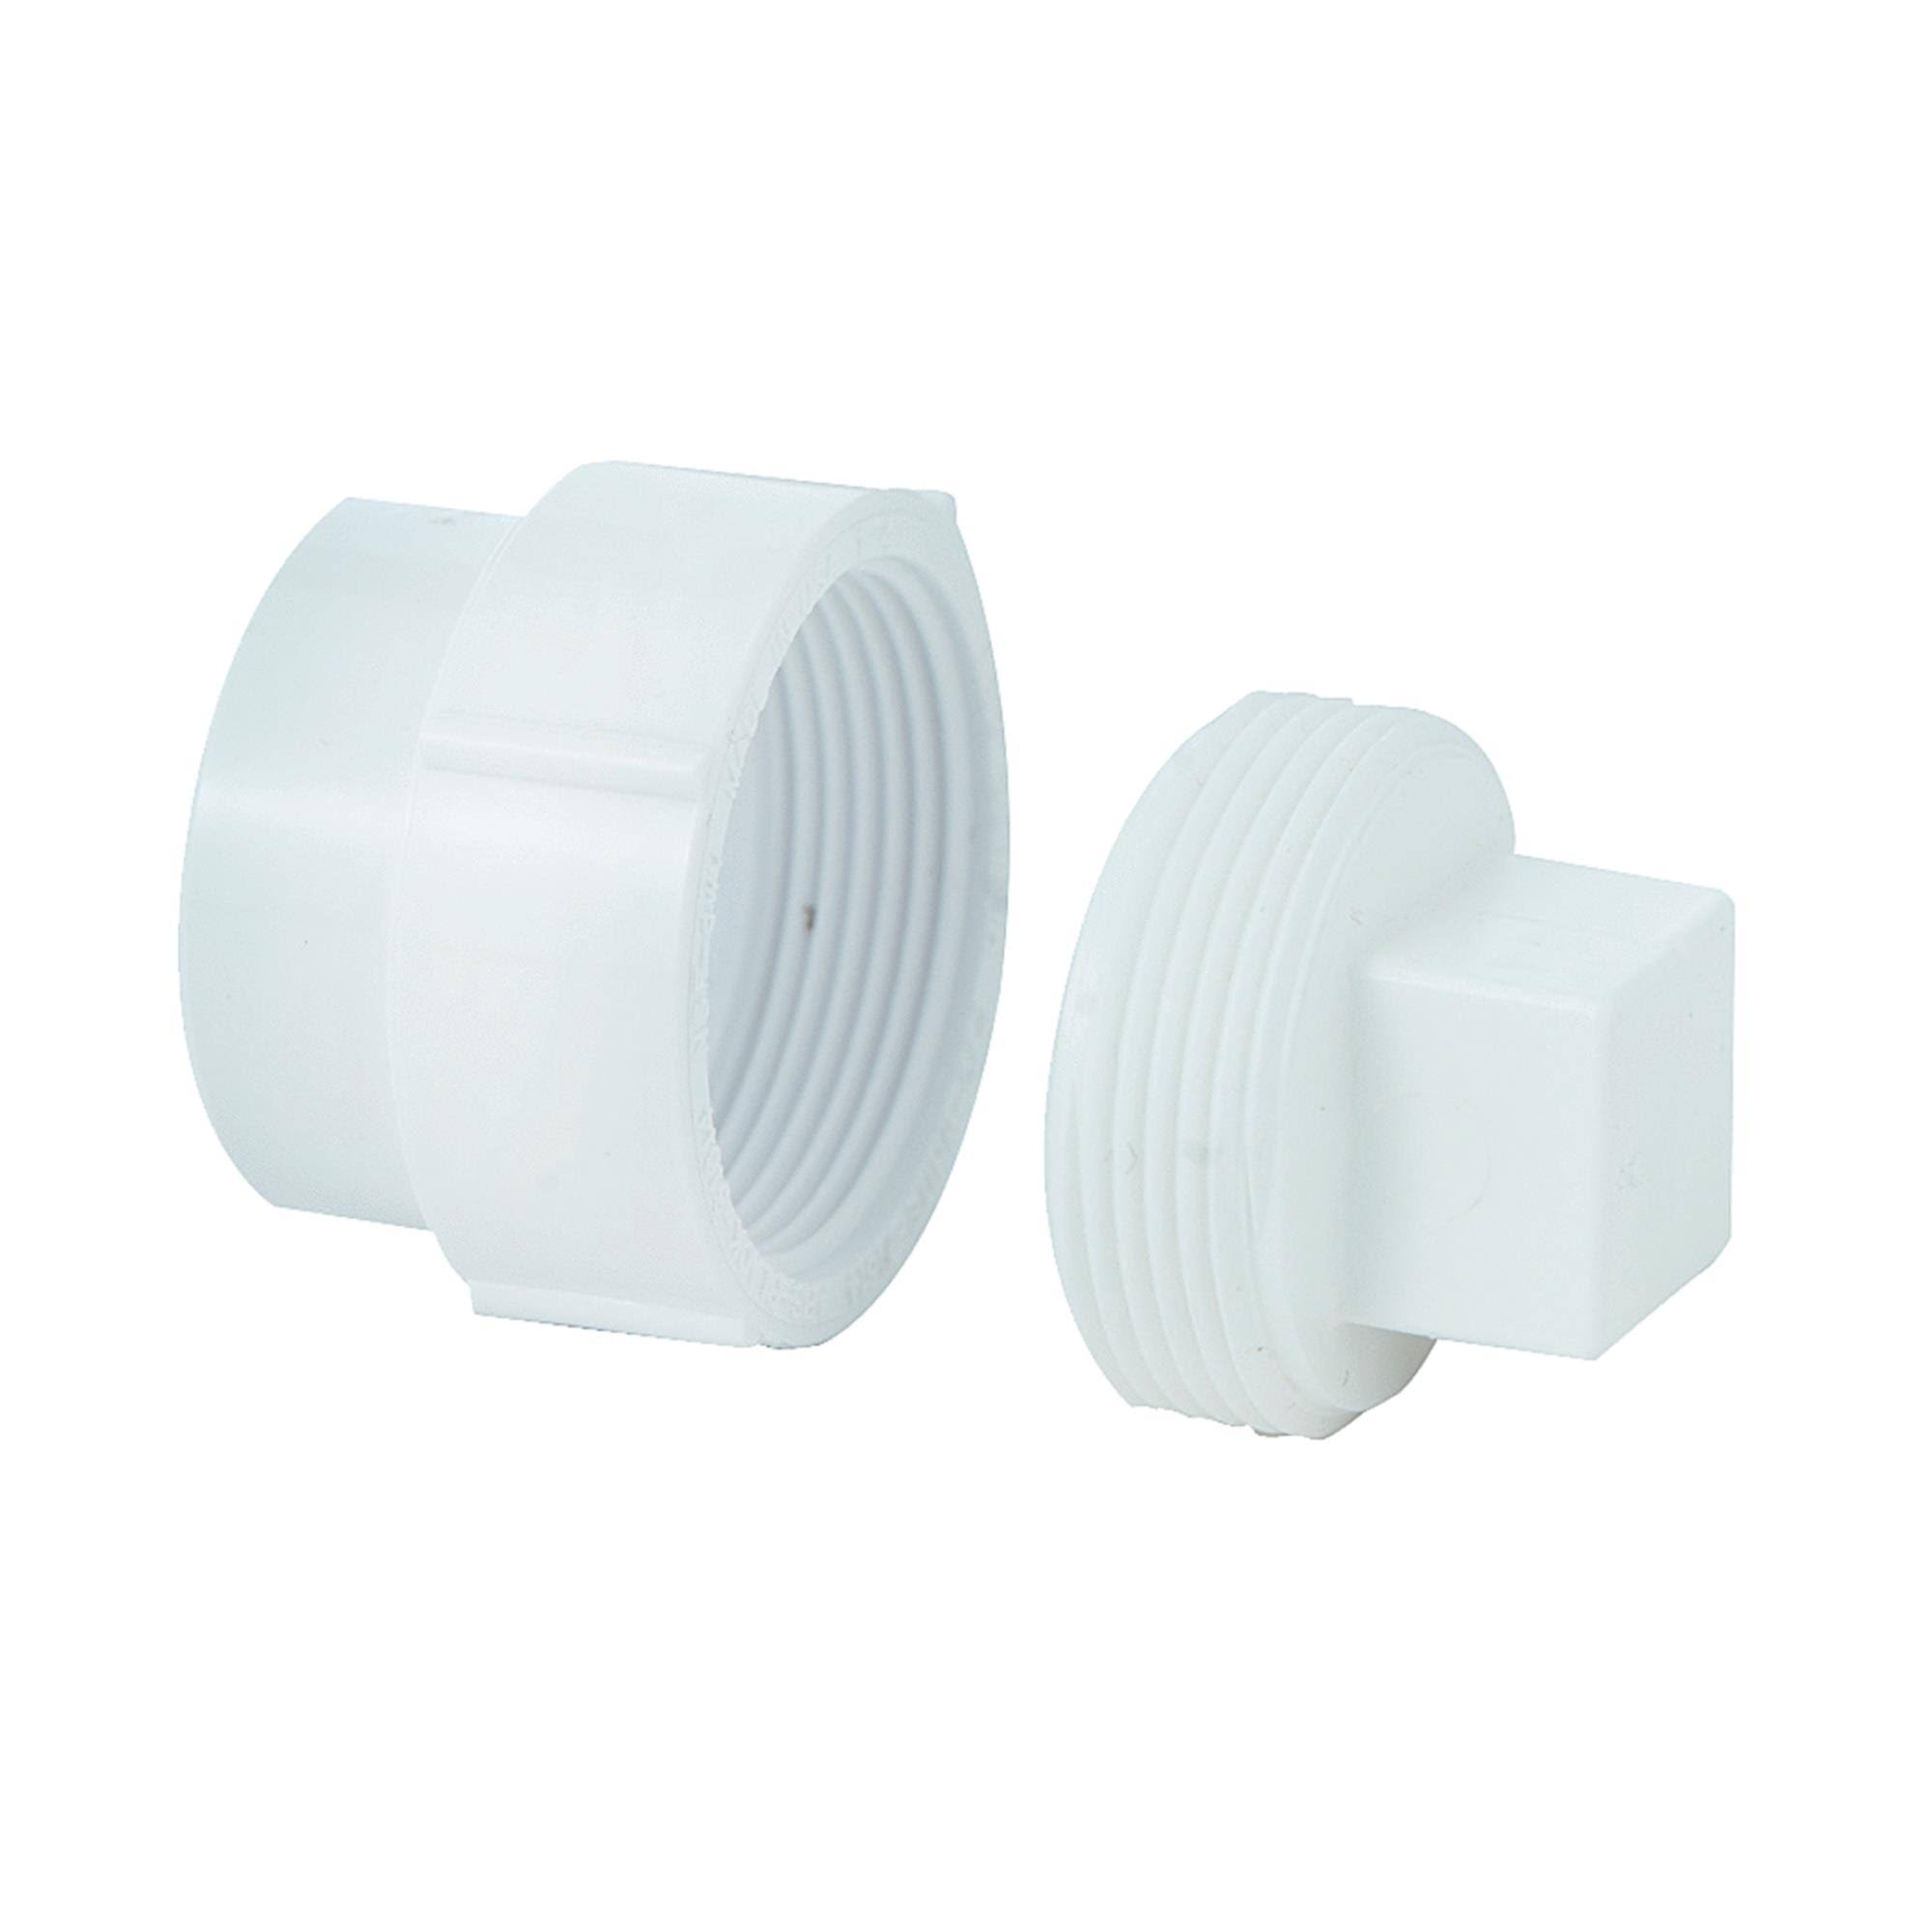 "Genova Products Cleanout Body - with Plug, White, 1-1/2"", 3 Pack"